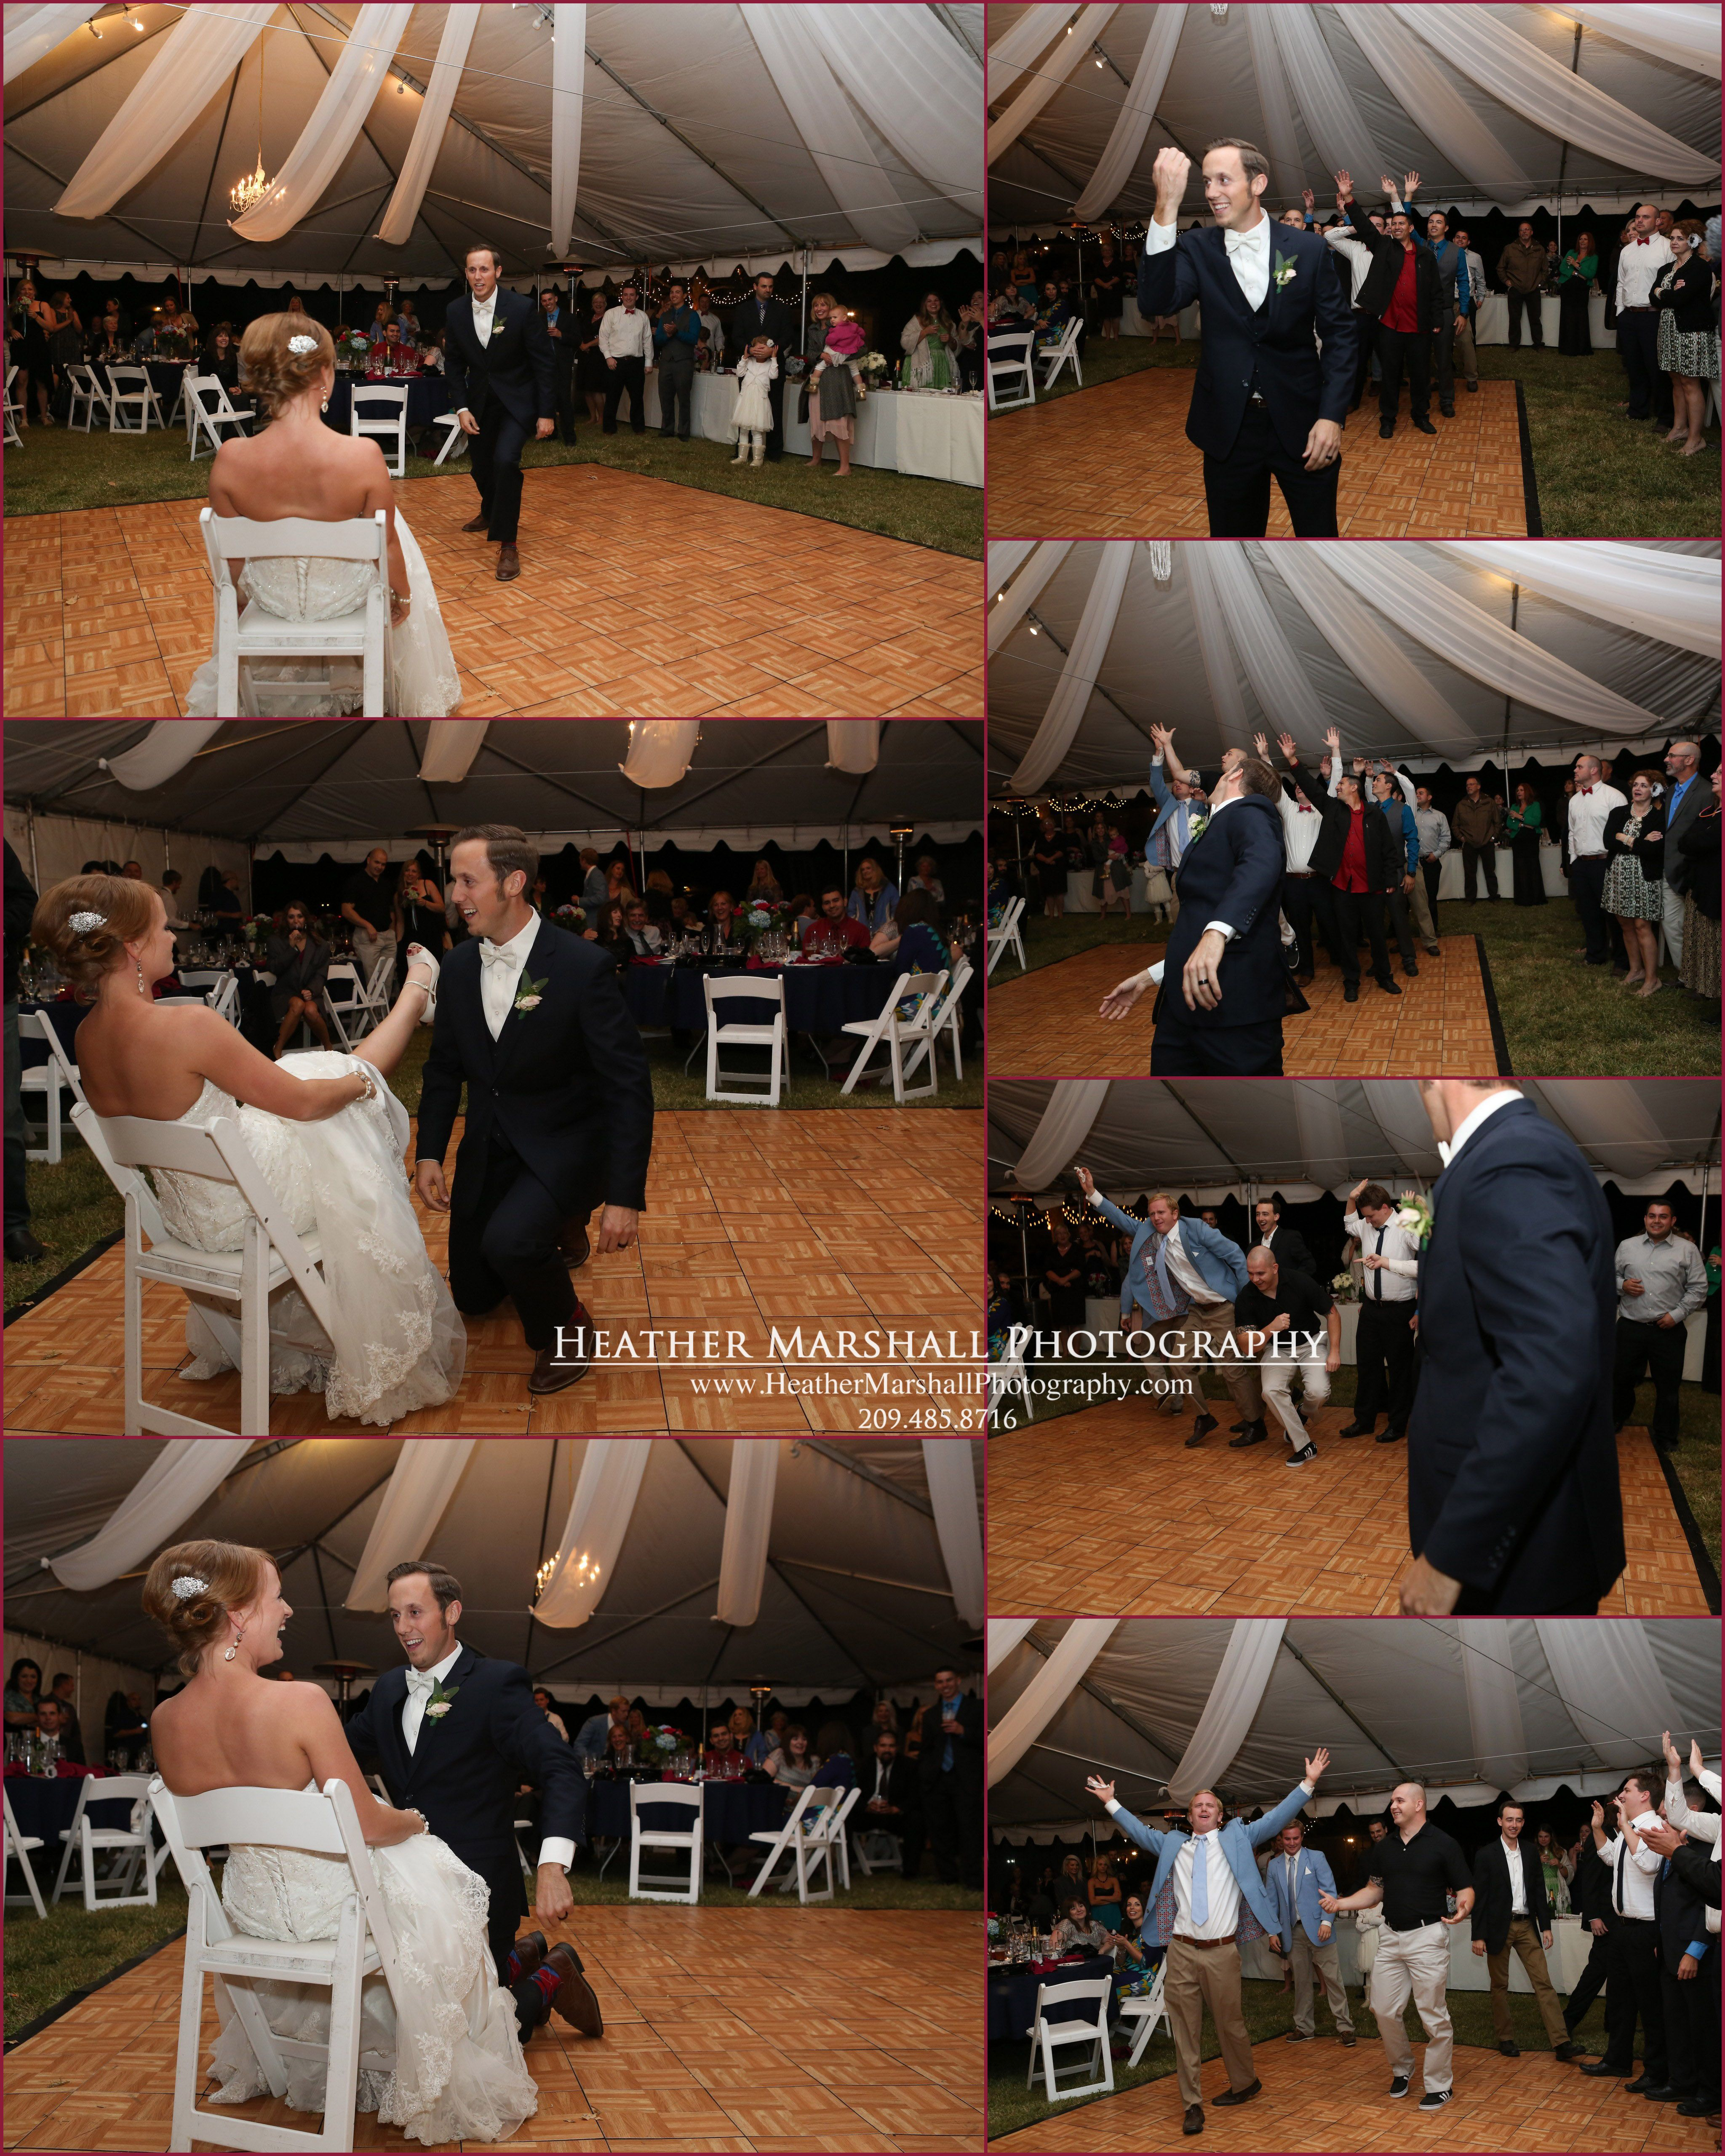 Wedding Reception | Groom's time to shine | getting the garter | garter toss | Heather Marshall Photography |